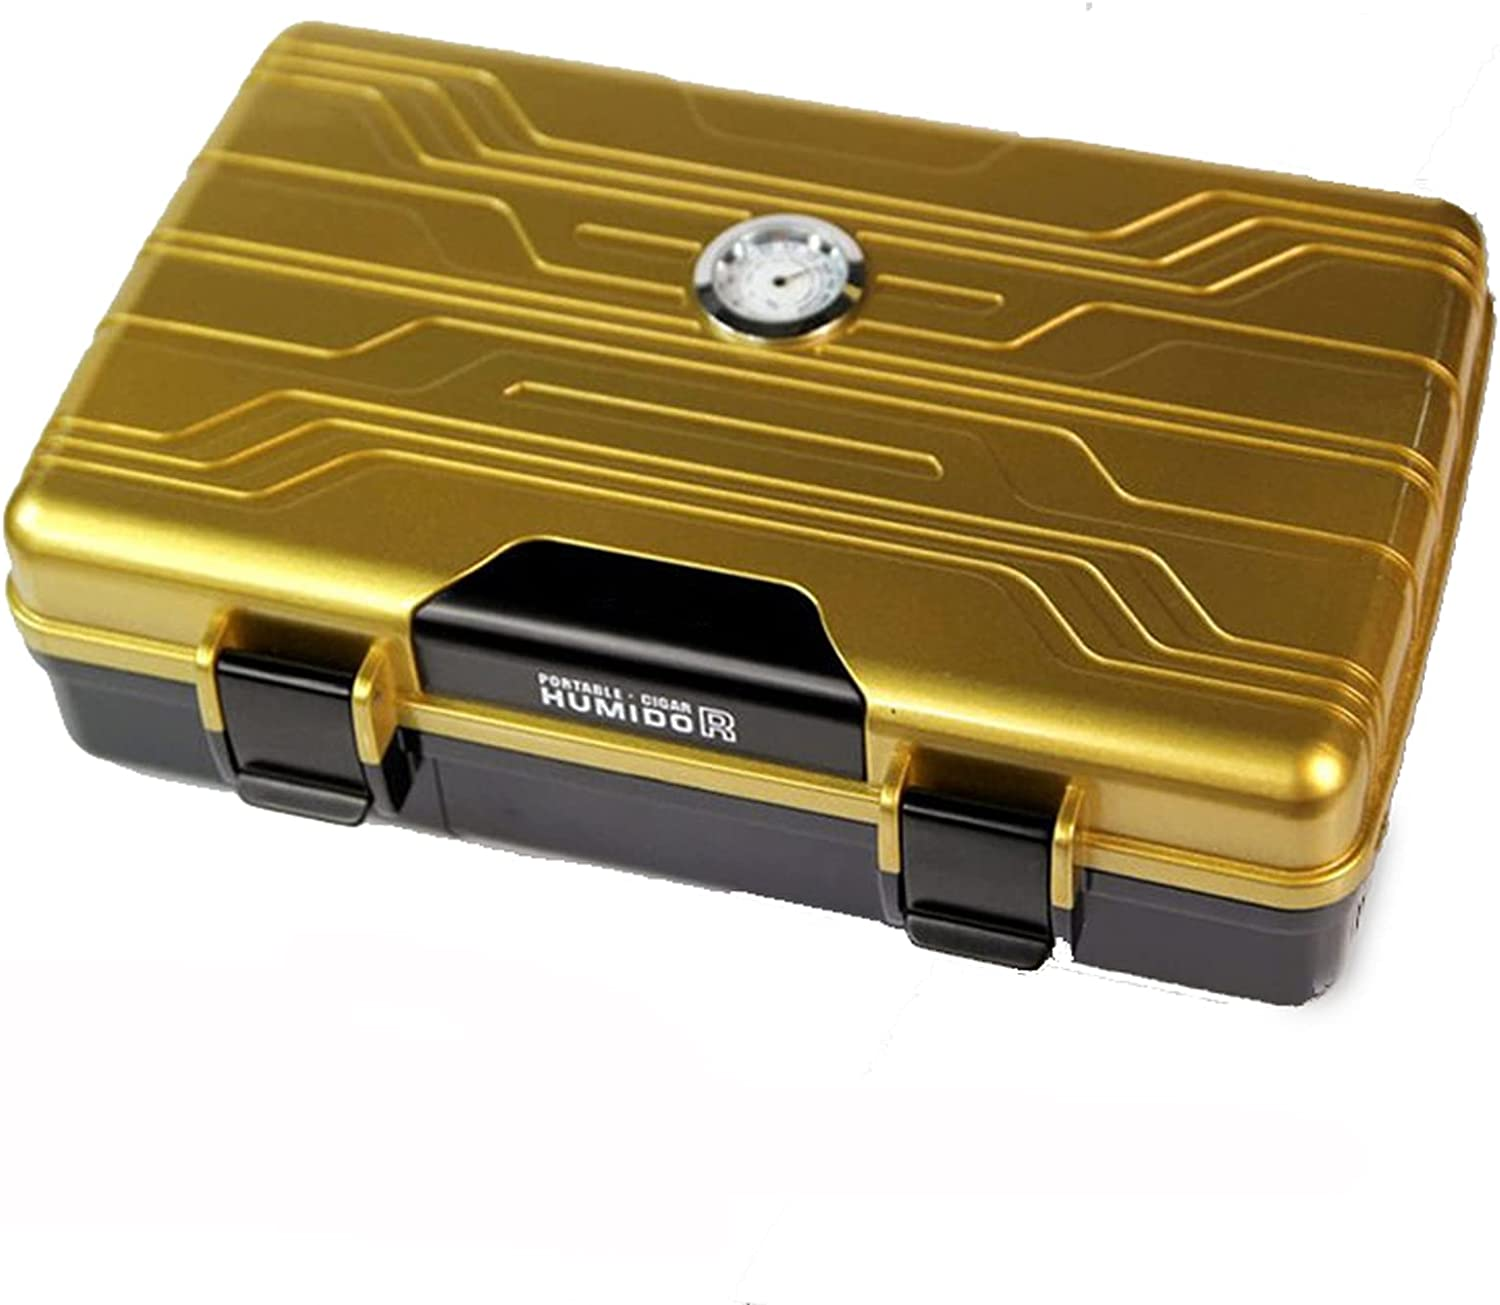 Inexpensive OUTHOME Car Topics on TV Portable Moisturizing Humidor Travel Water